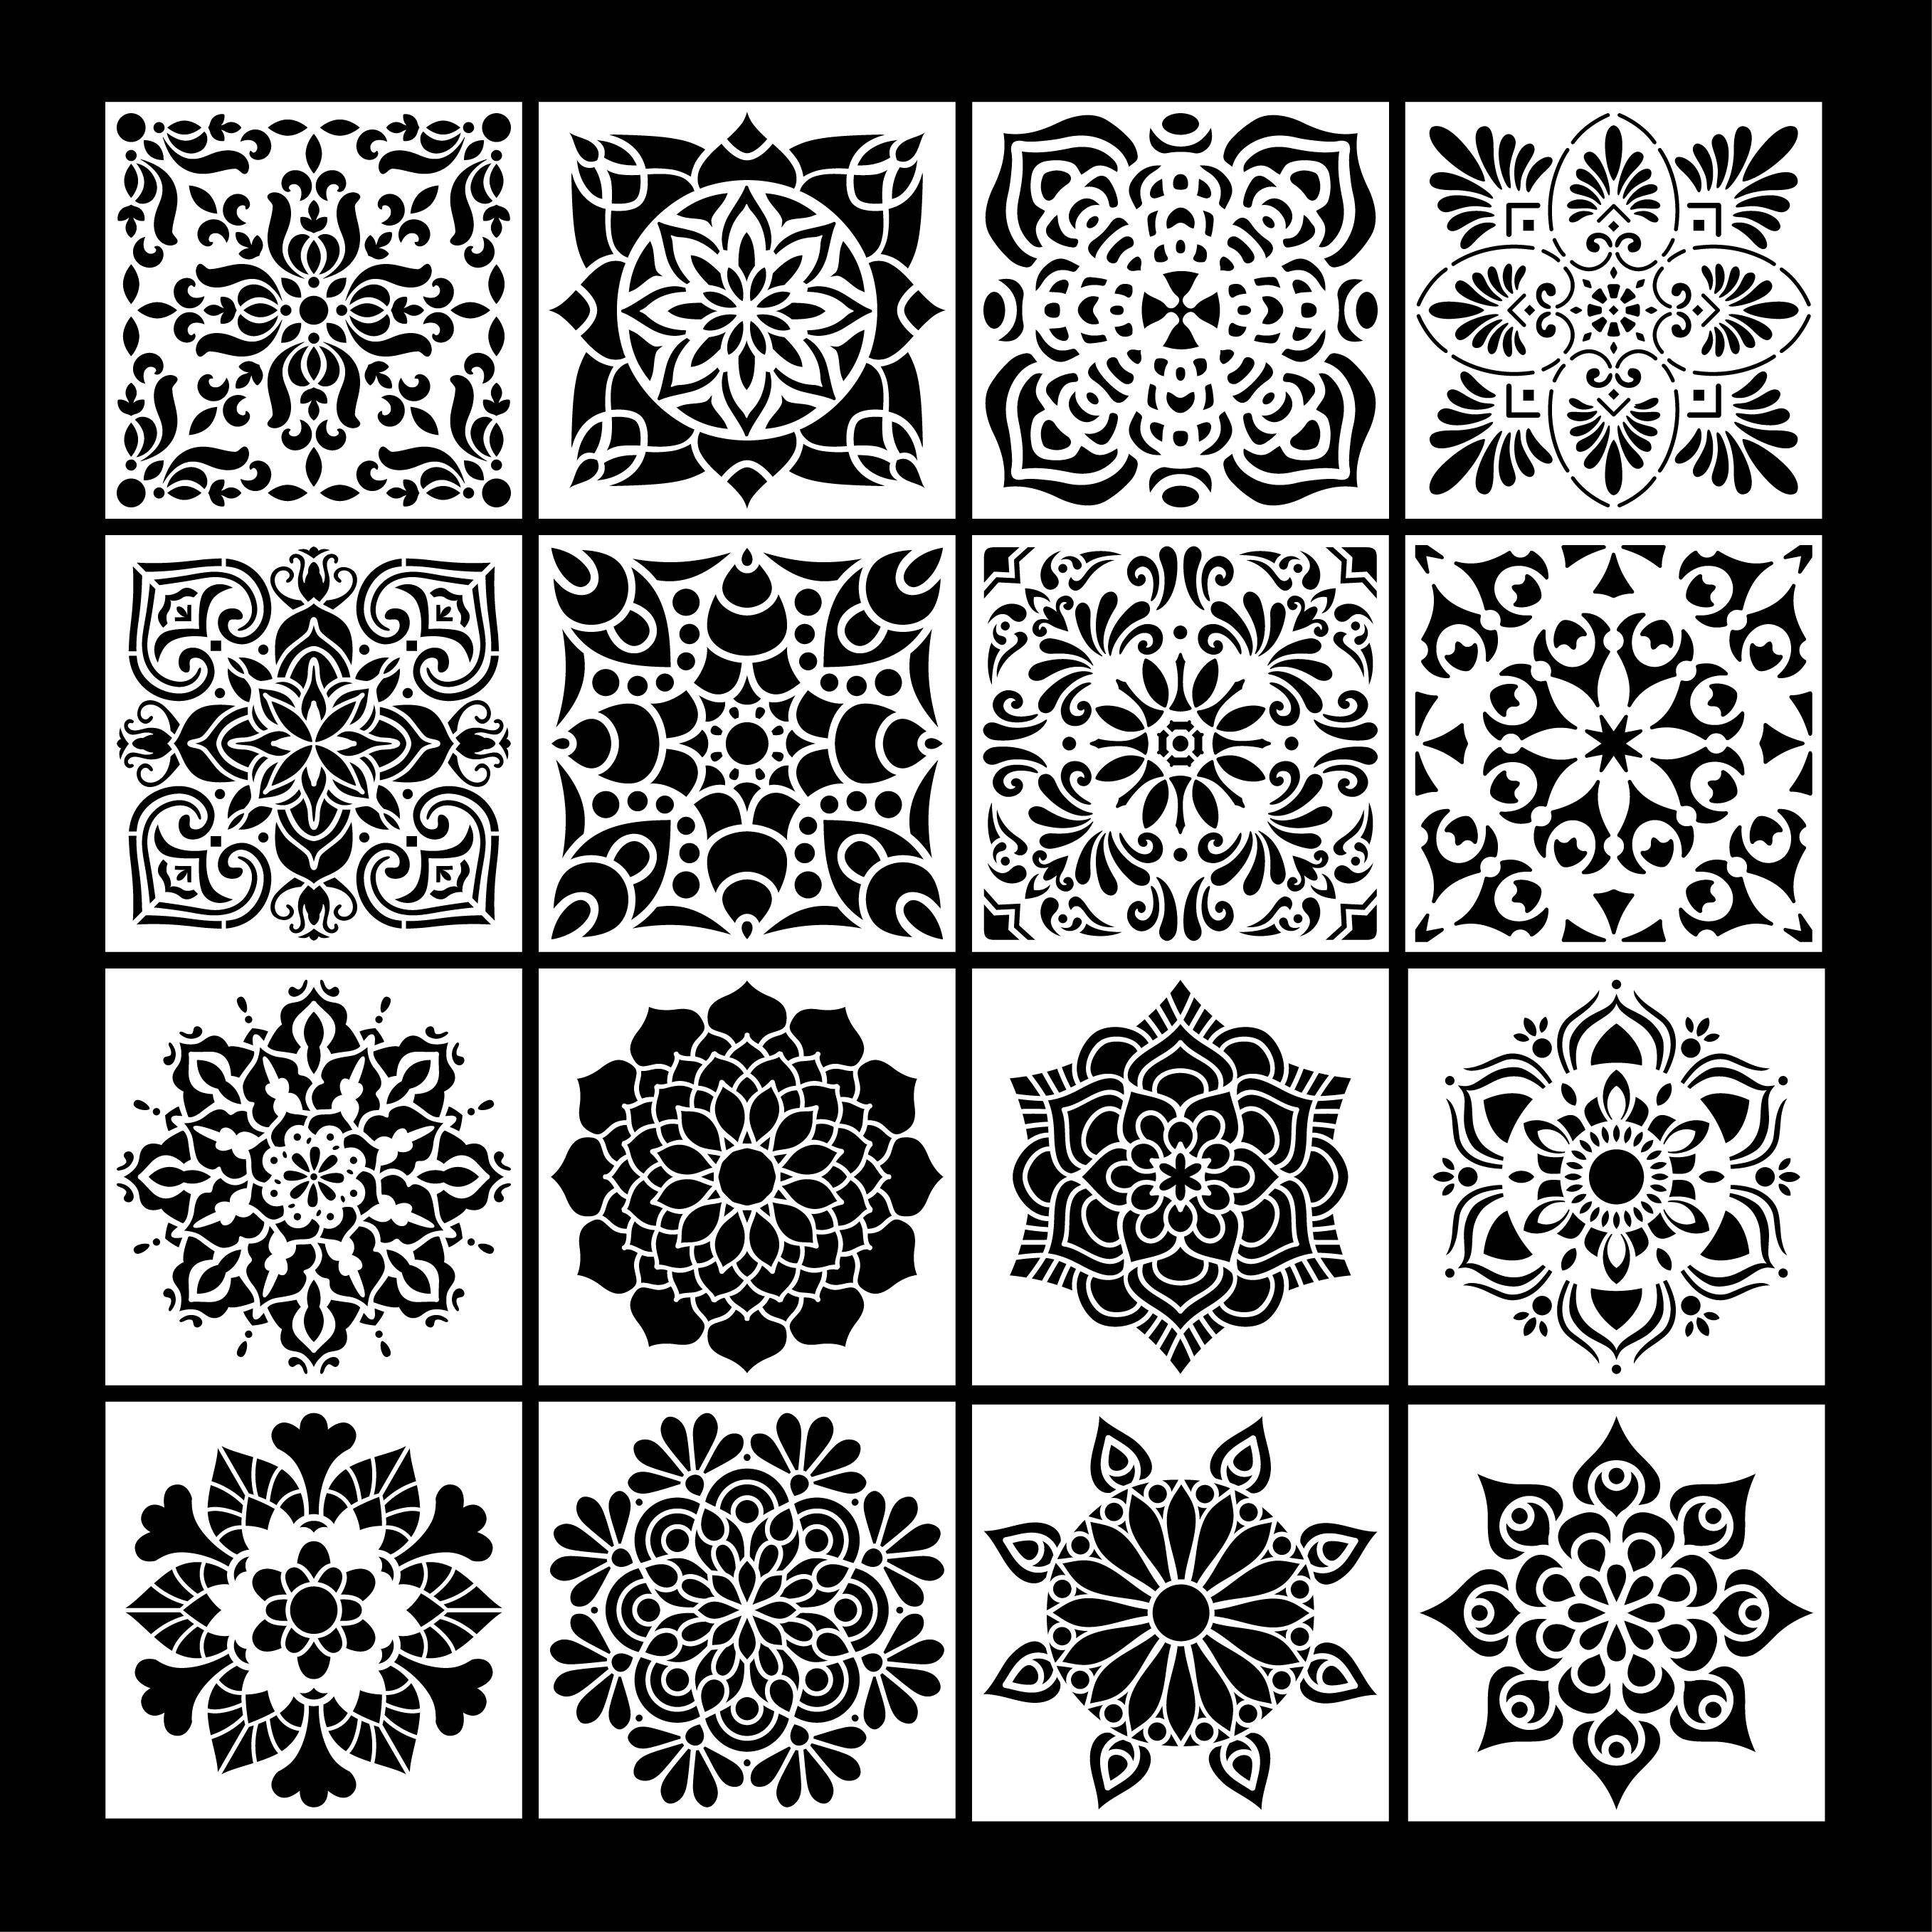 Painting Drawing Stencils Mandala Template for Stones Floor Wall Tile Fabric Wood Burning Art